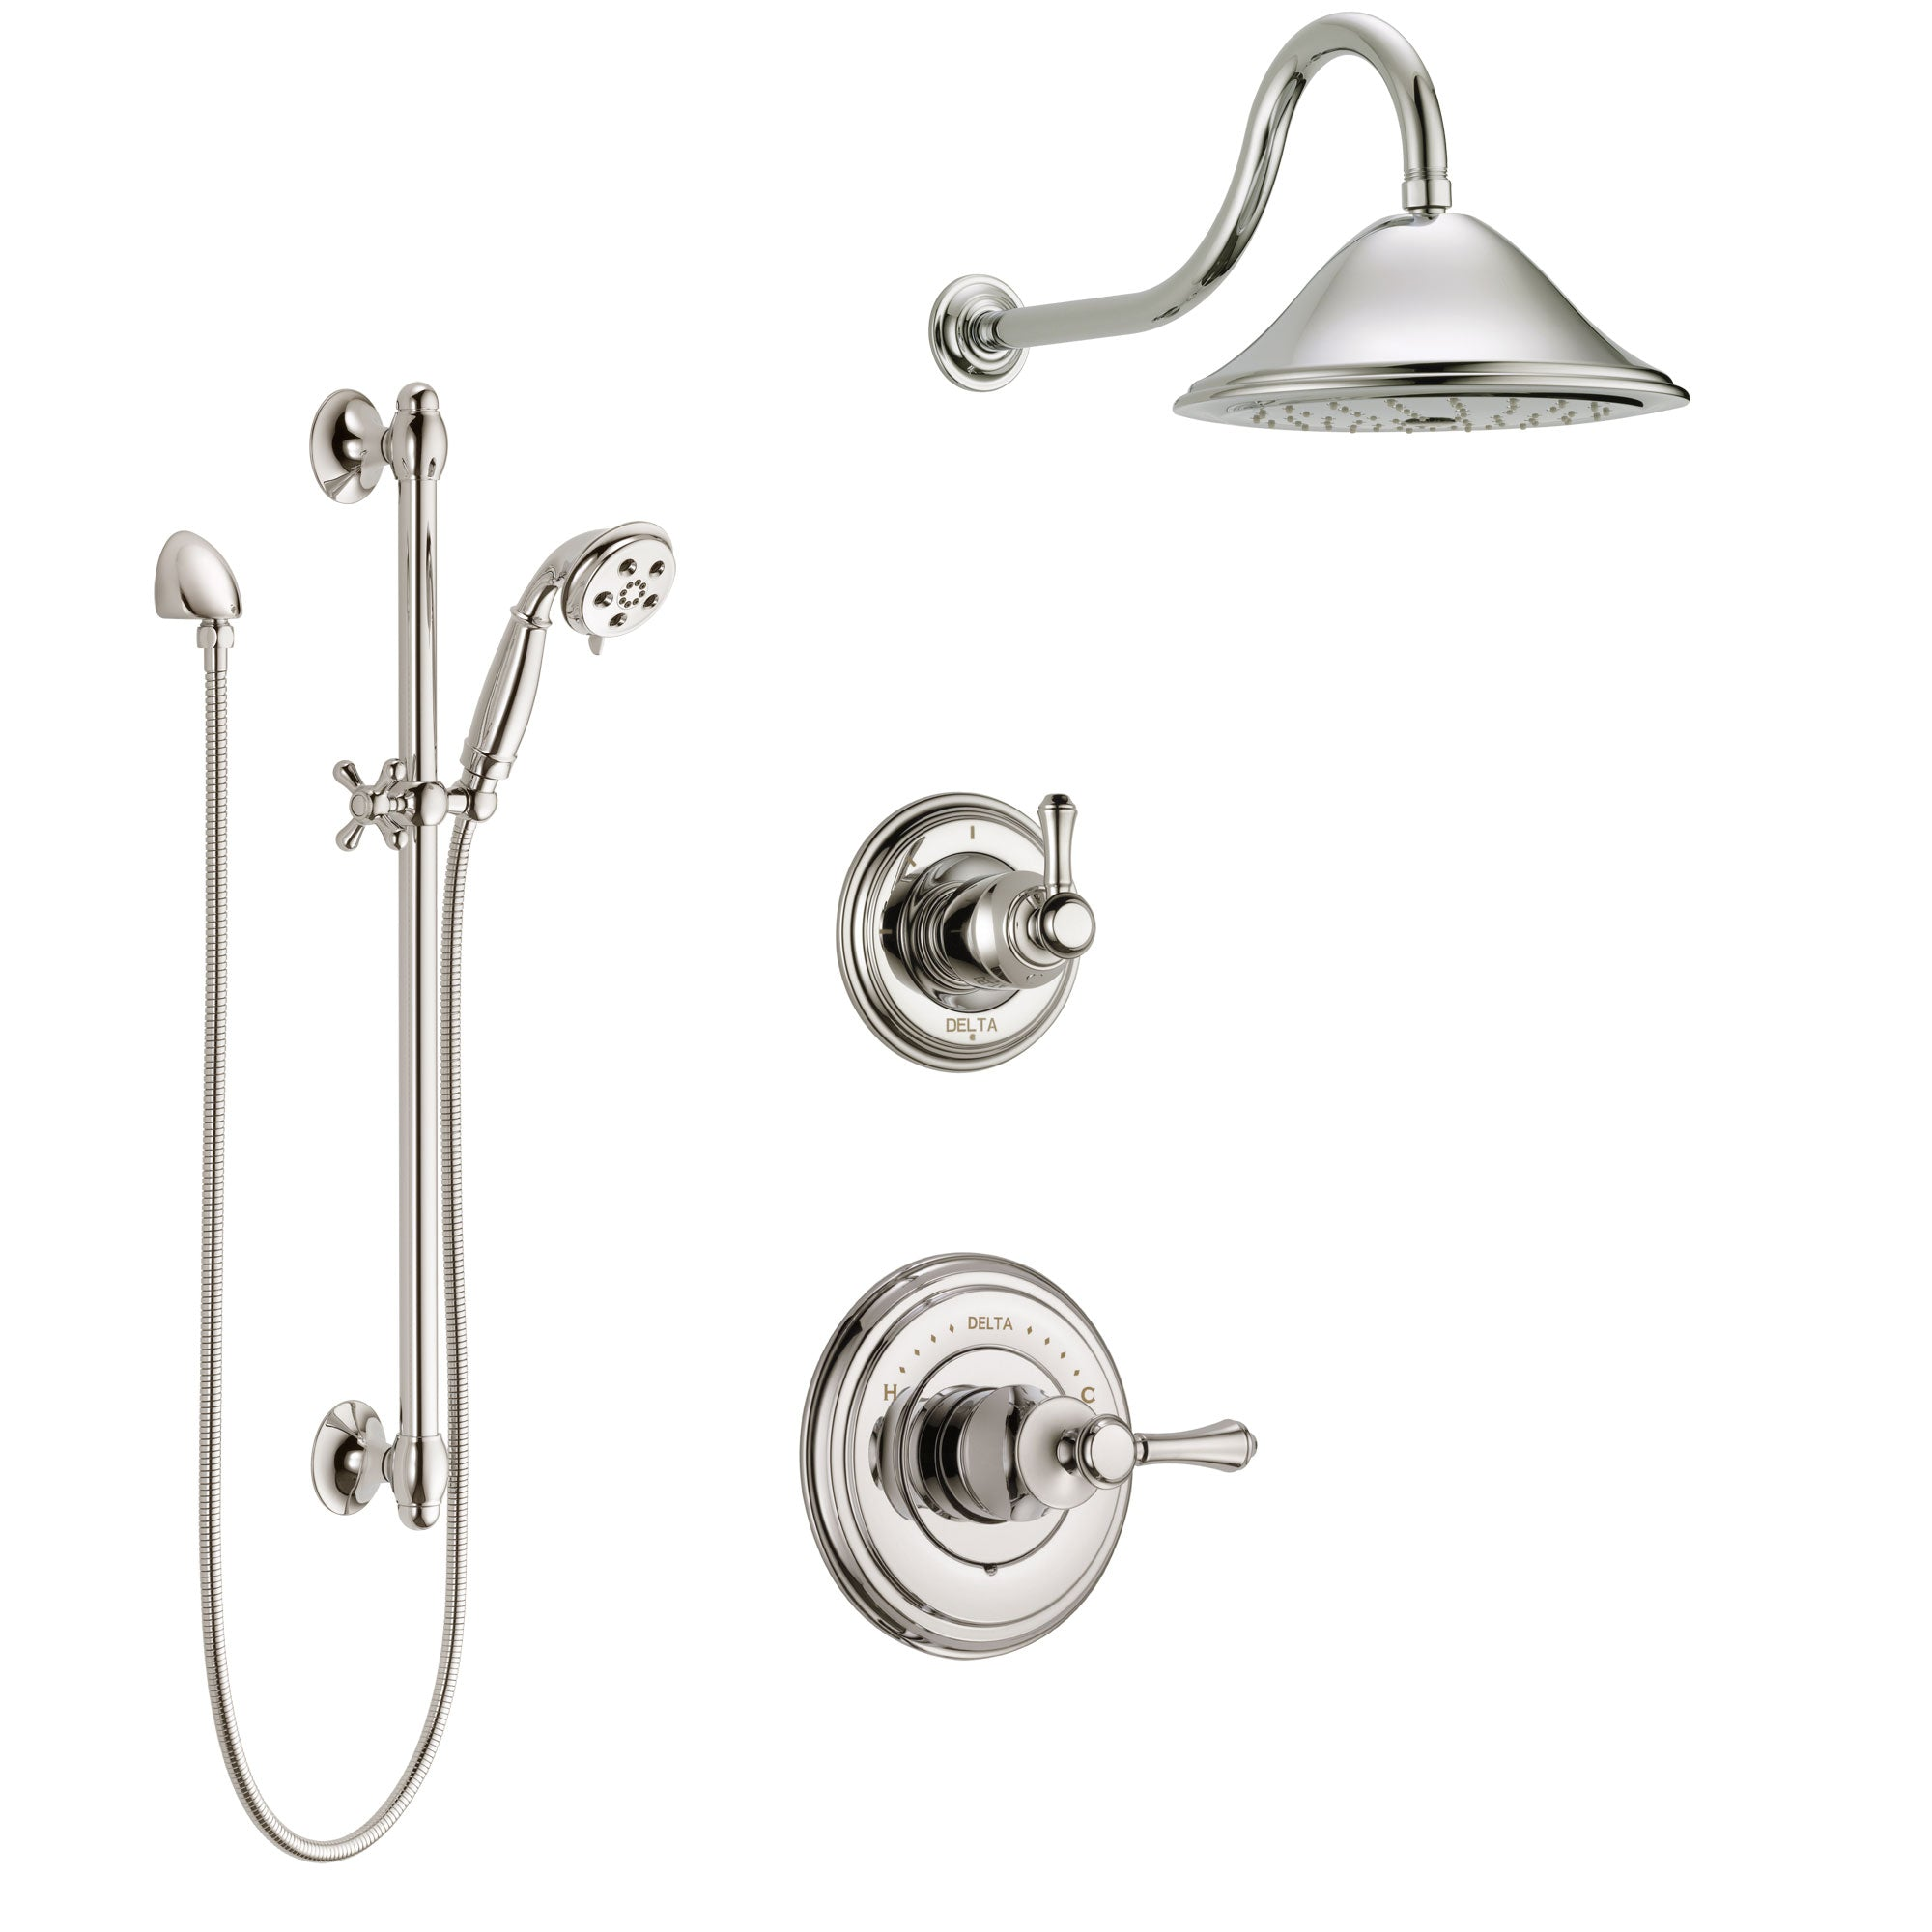 Delta Cassidy Polished Nickel Finish Shower System with Control Handle, 3-Setting Diverter, Showerhead, and Hand Shower with Slidebar SS14972PN2